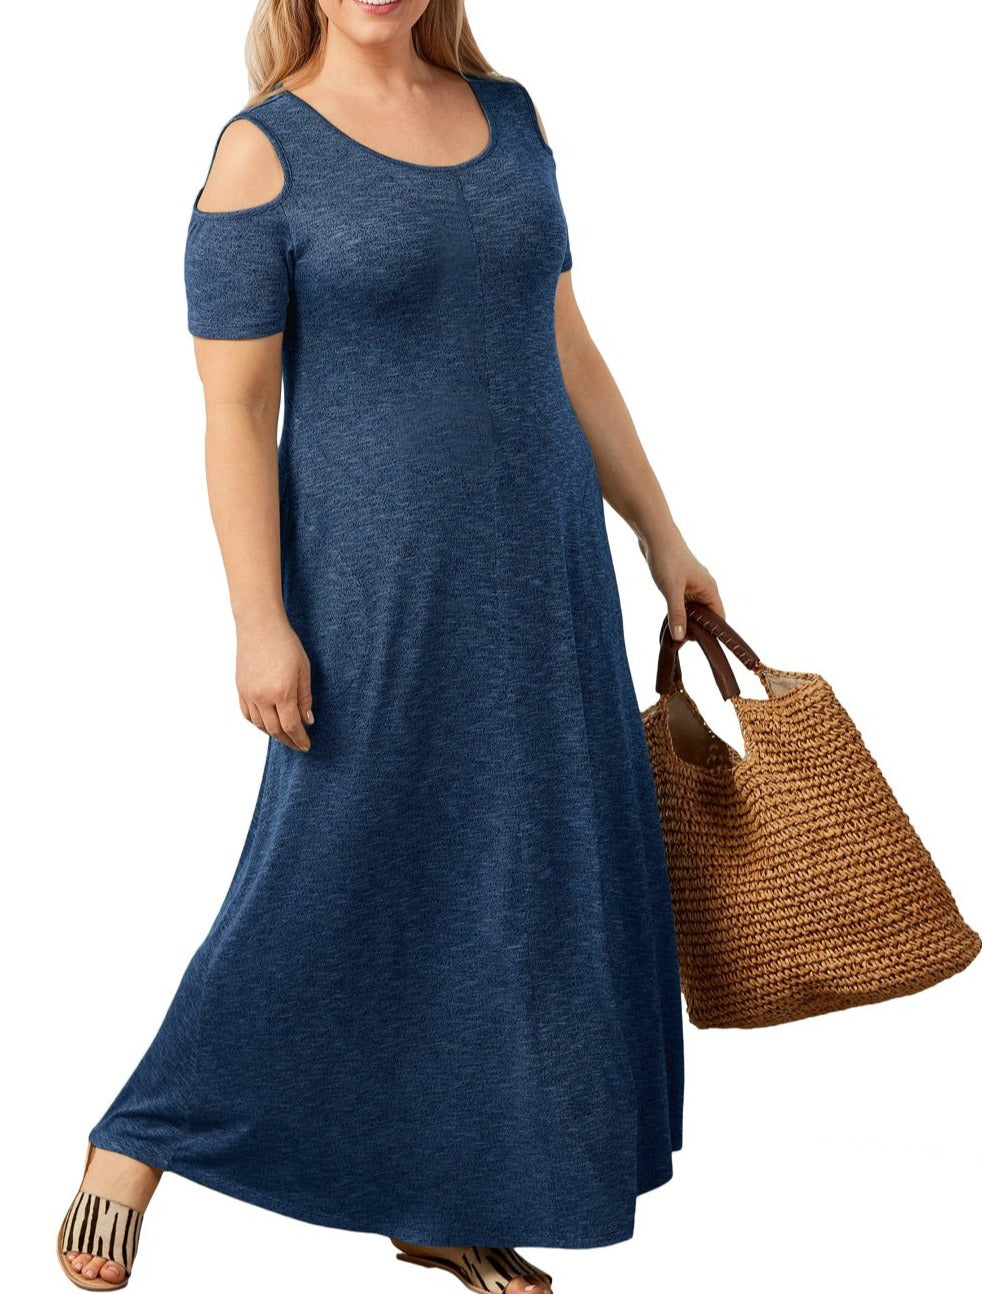 Indigo Cold Shoulder Pocket Style Maxi Dress